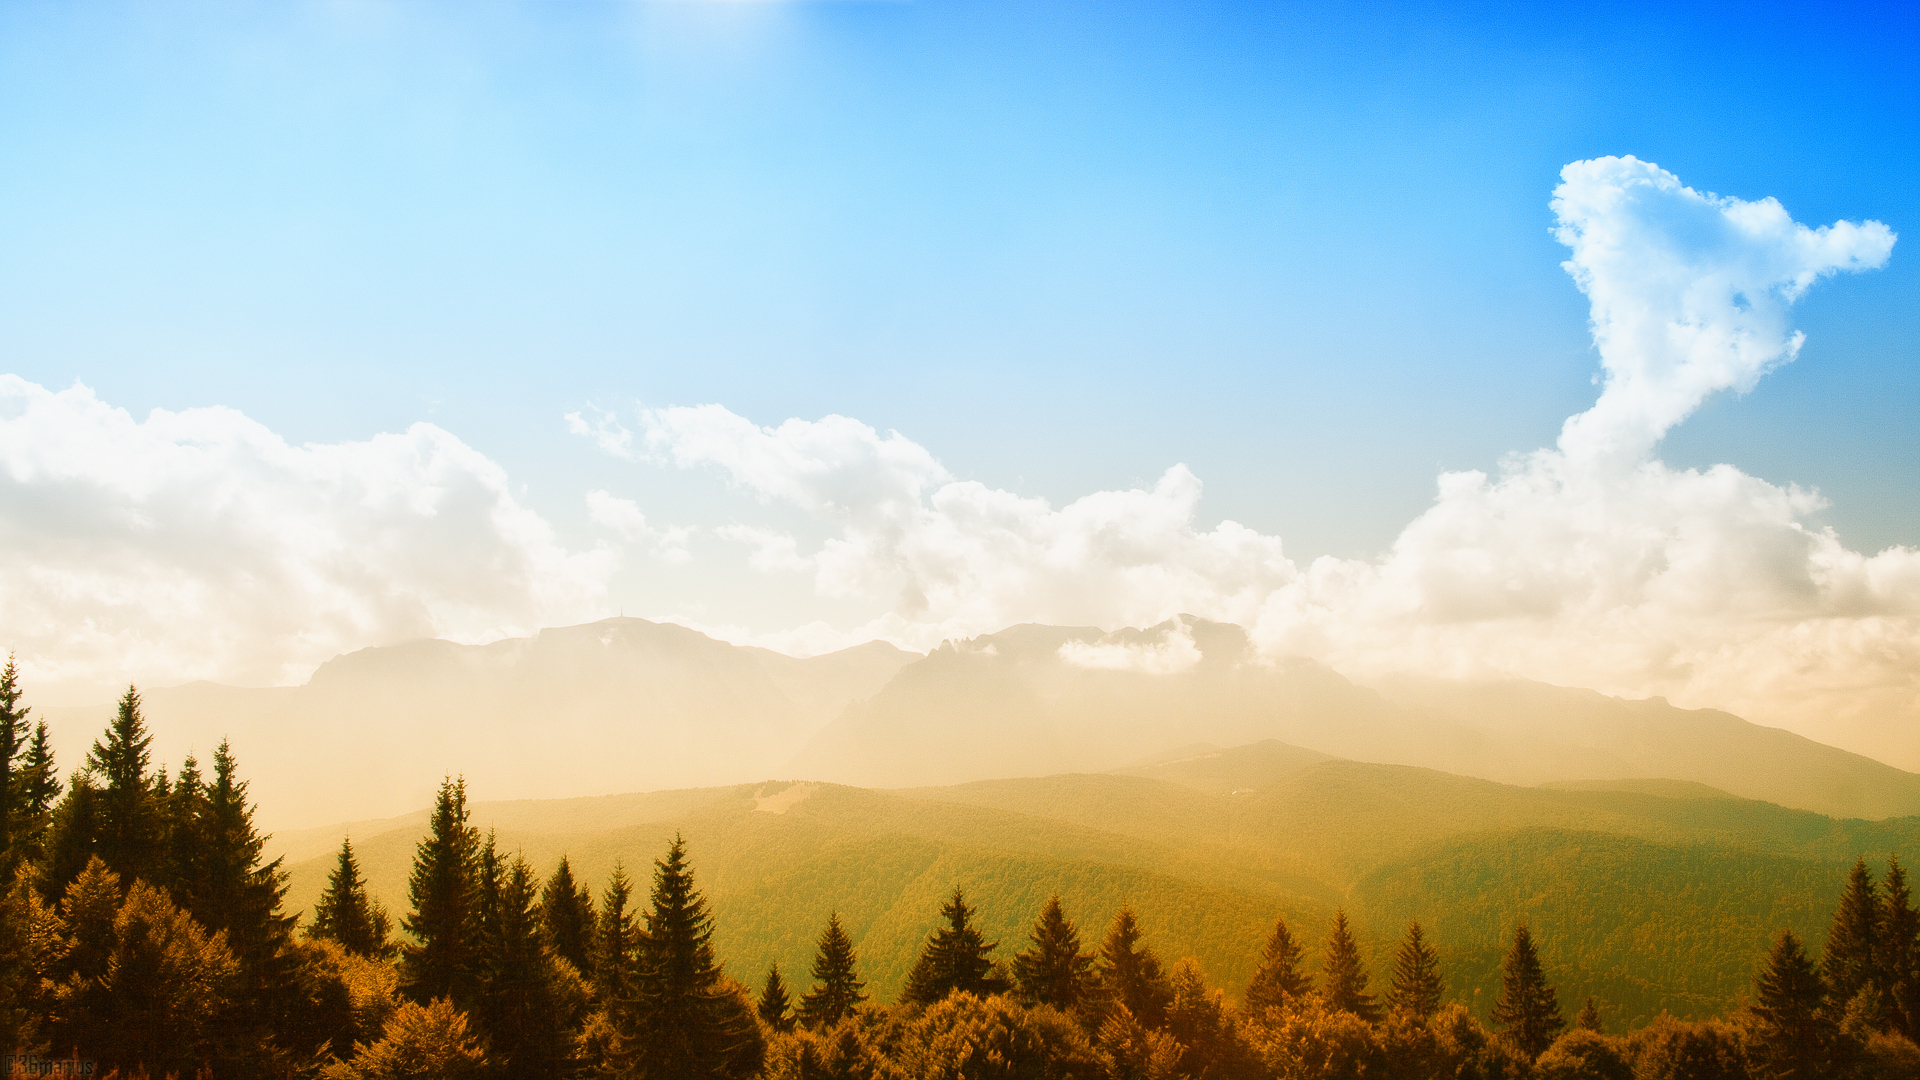 26168 download wallpaper Landscape, Sky, Mountains, Sun, Clouds screensavers and pictures for free